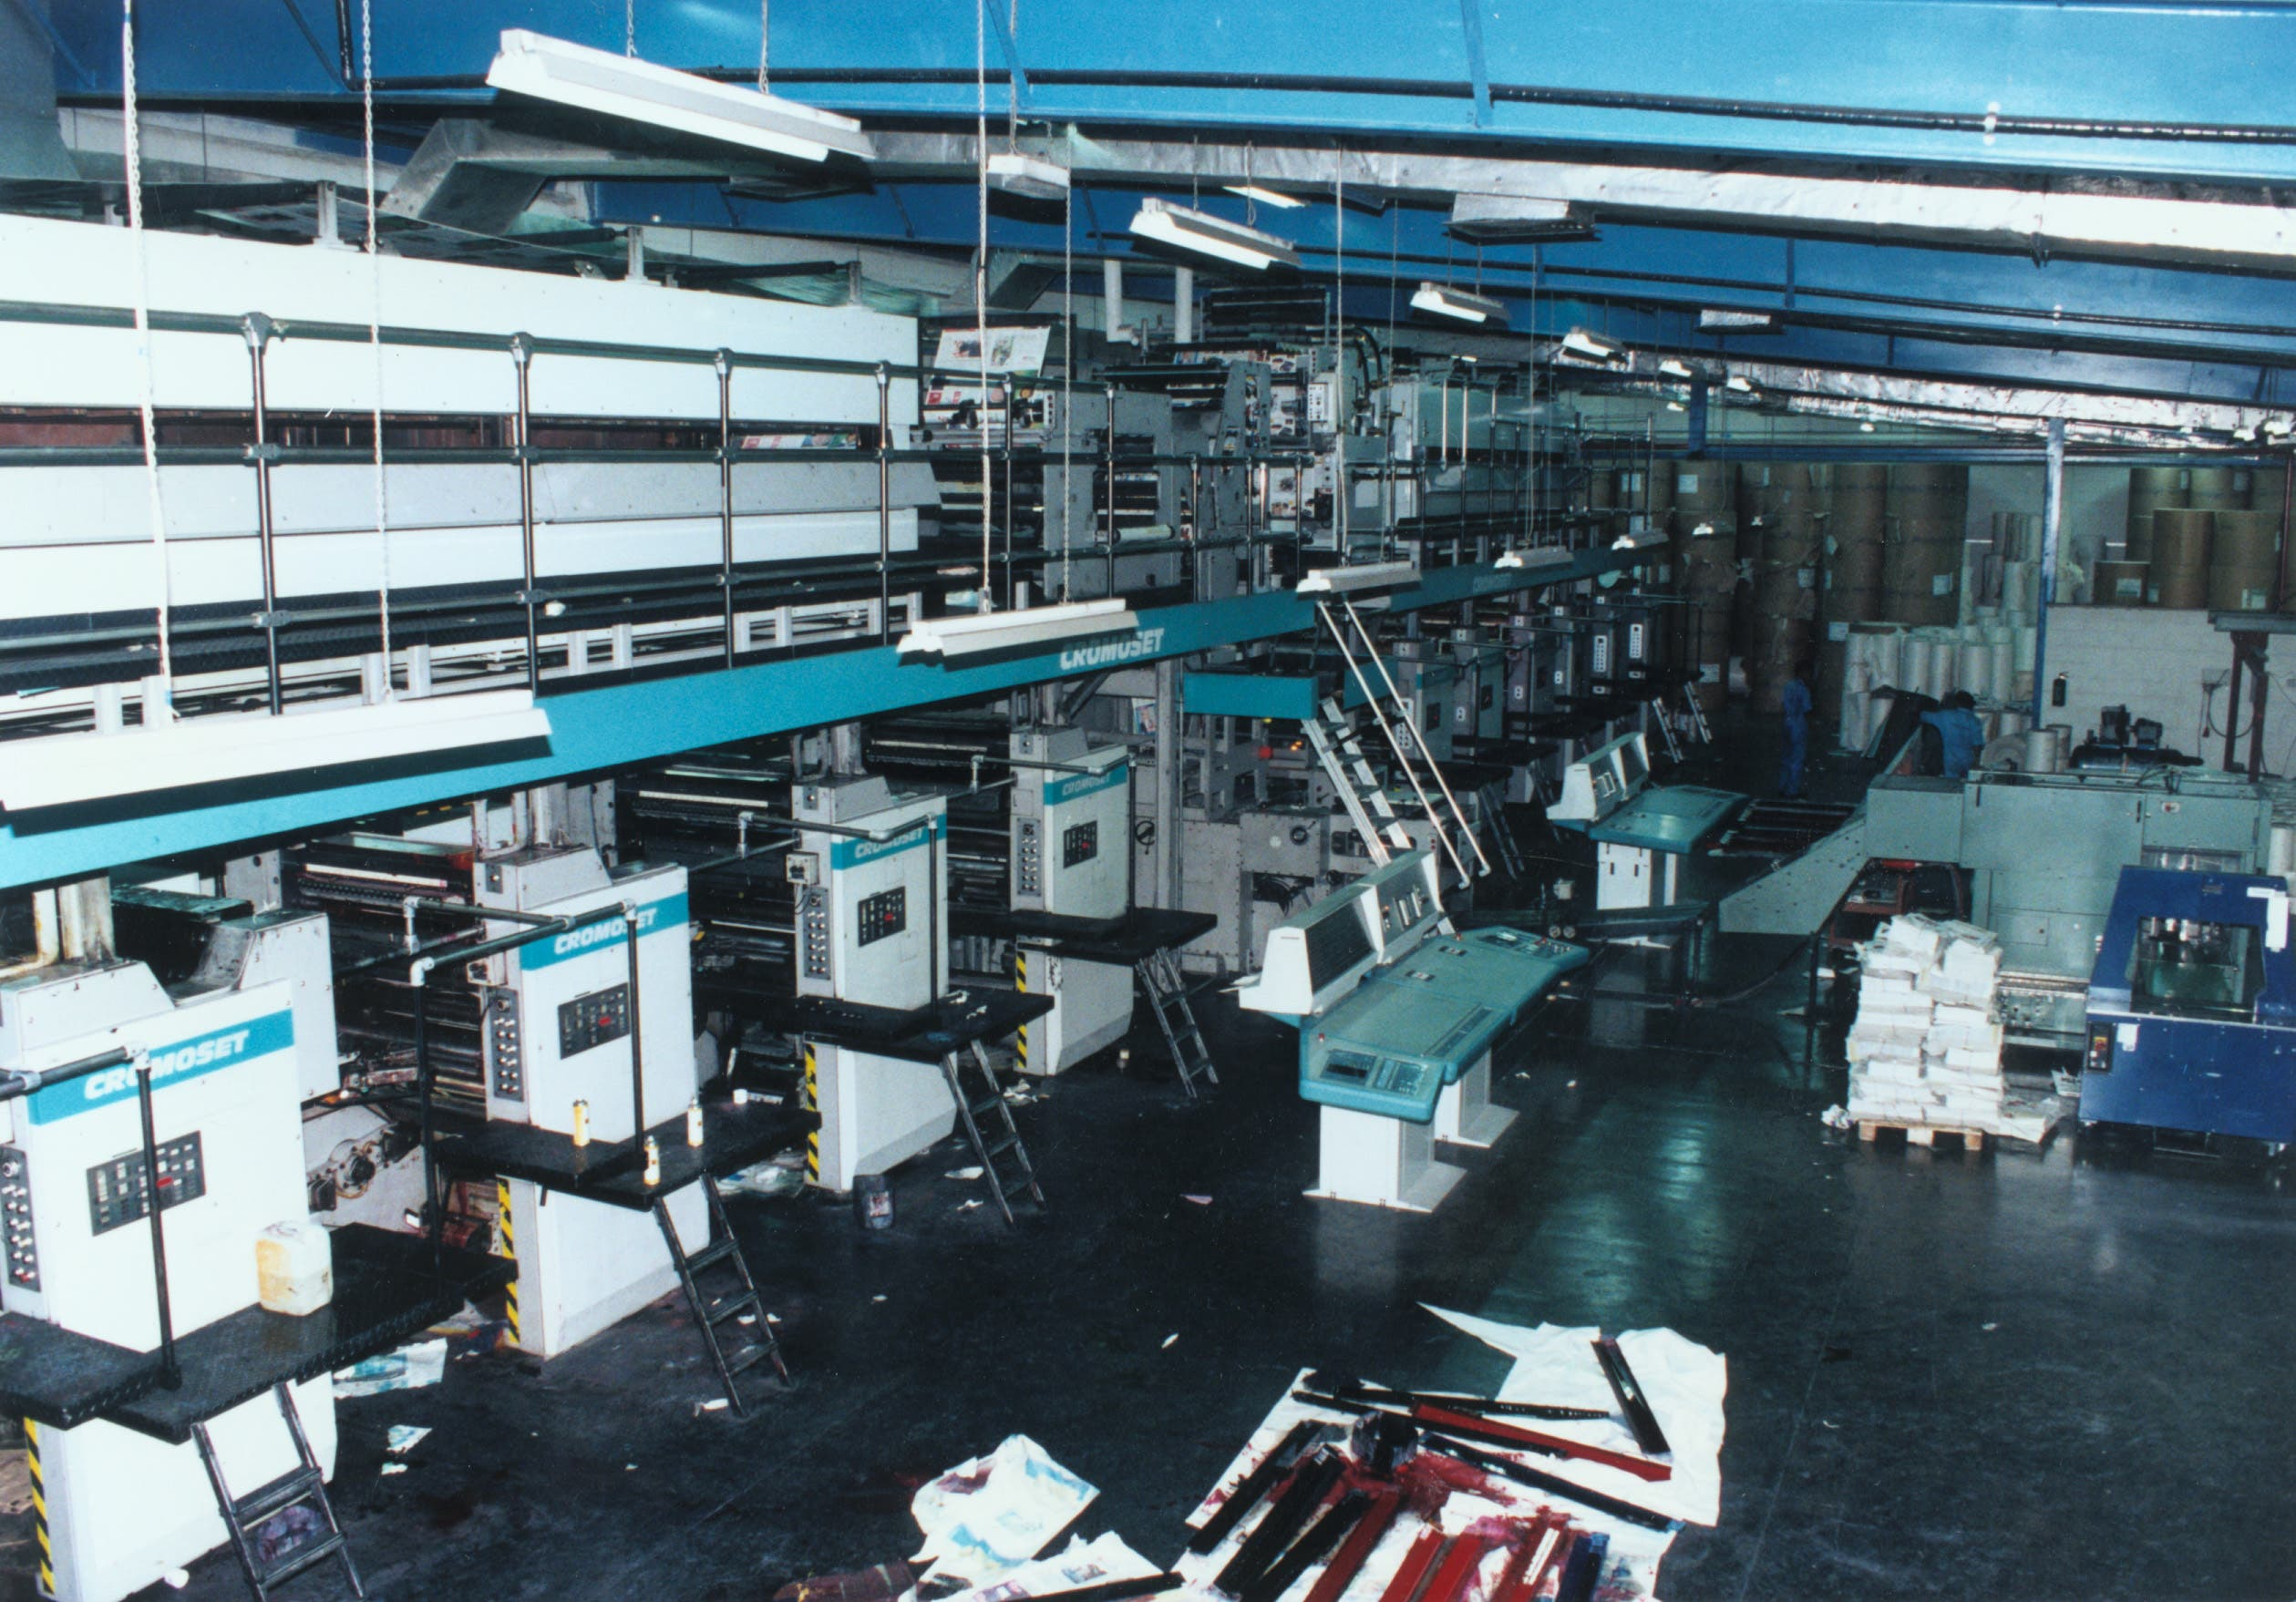 A third press, a Cromoset, was installed in 1993. (Photo courtesy: Gulf News)